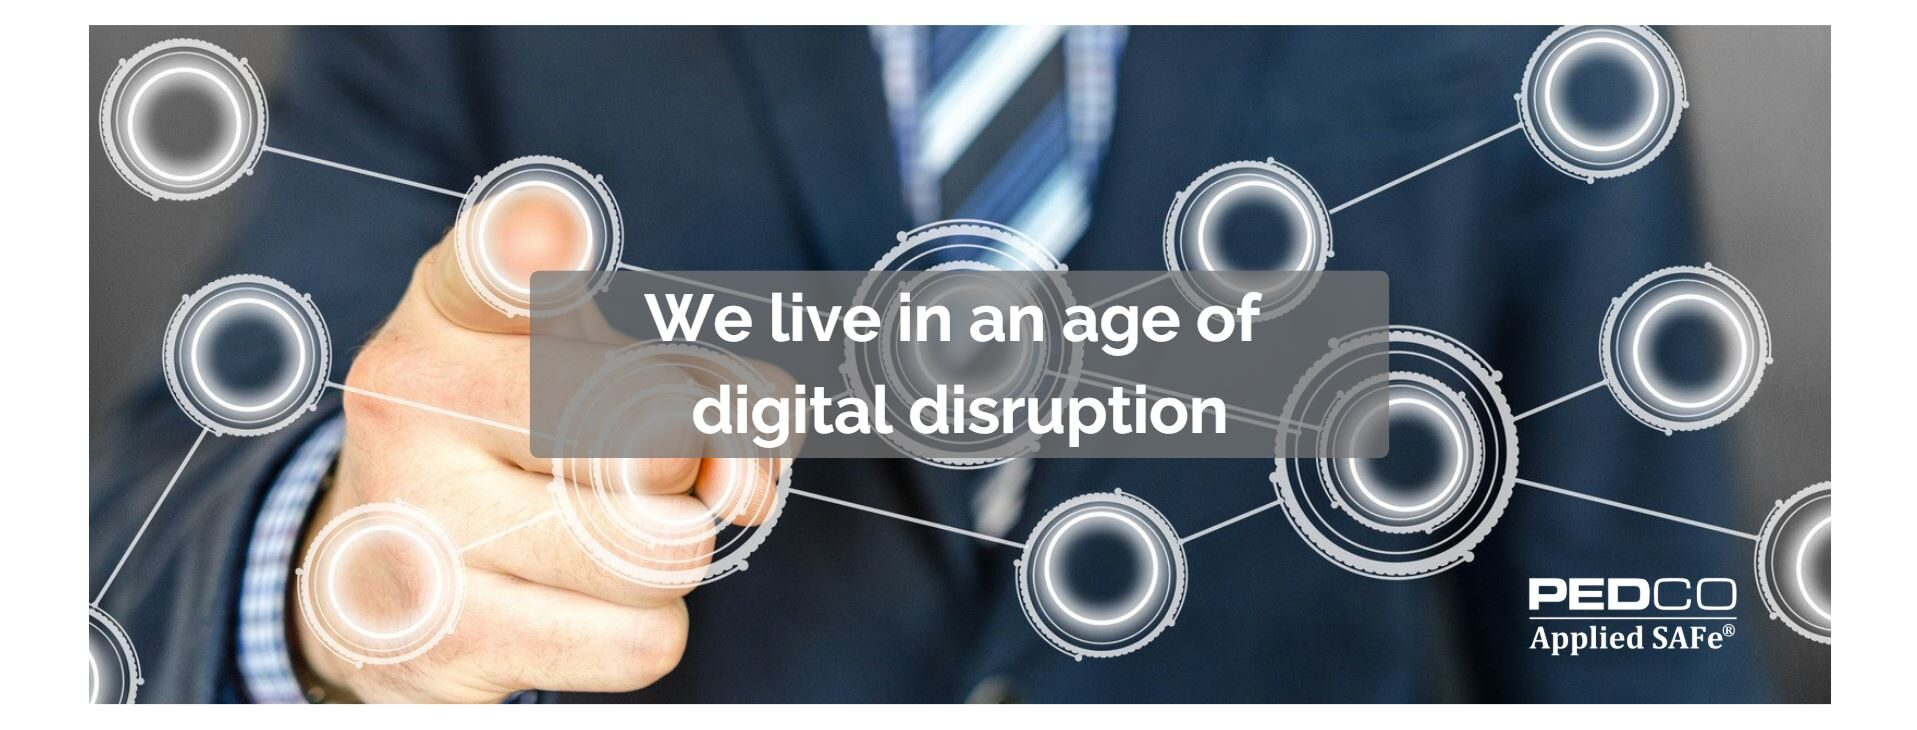 We live in an age of digital disruption